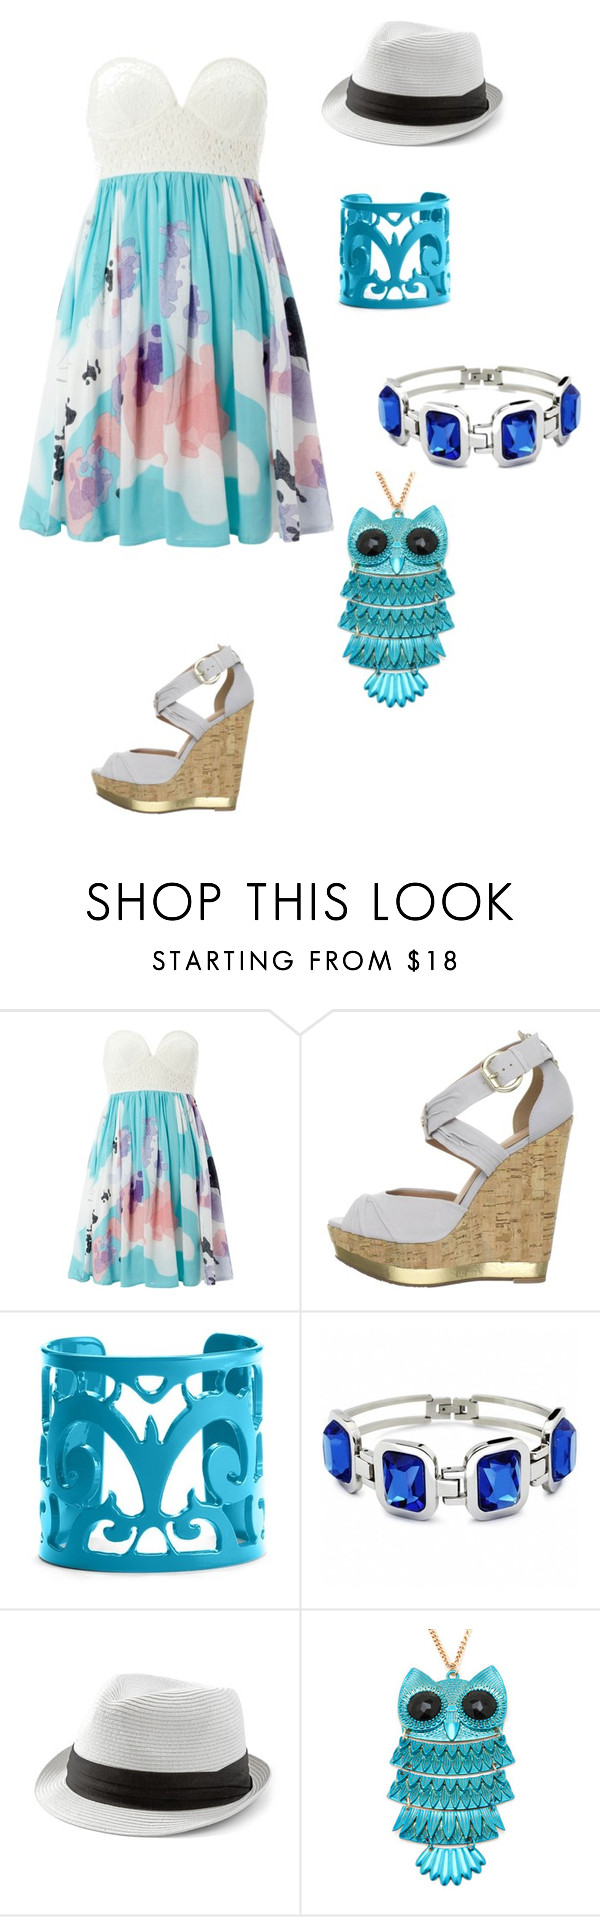 """Beach Time!"" by xniallerspotato ❤ liked on Polyvore featuring Izabel London, Madison Harding, Moschitto Designs, Fantasy Jewelry Box and White House Black Market"